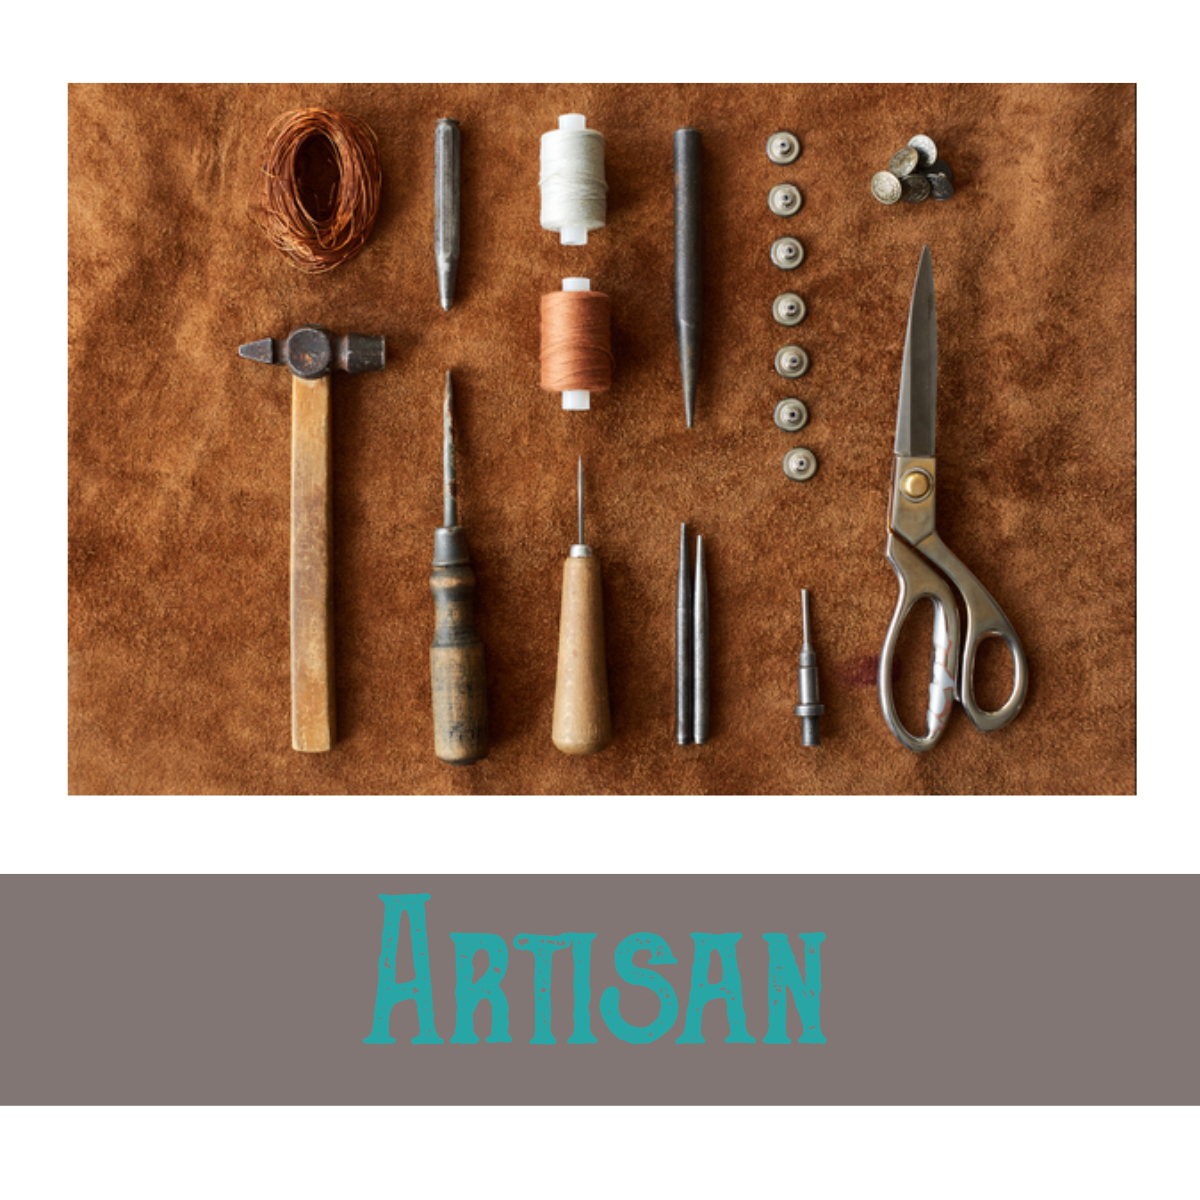 Artisan Package